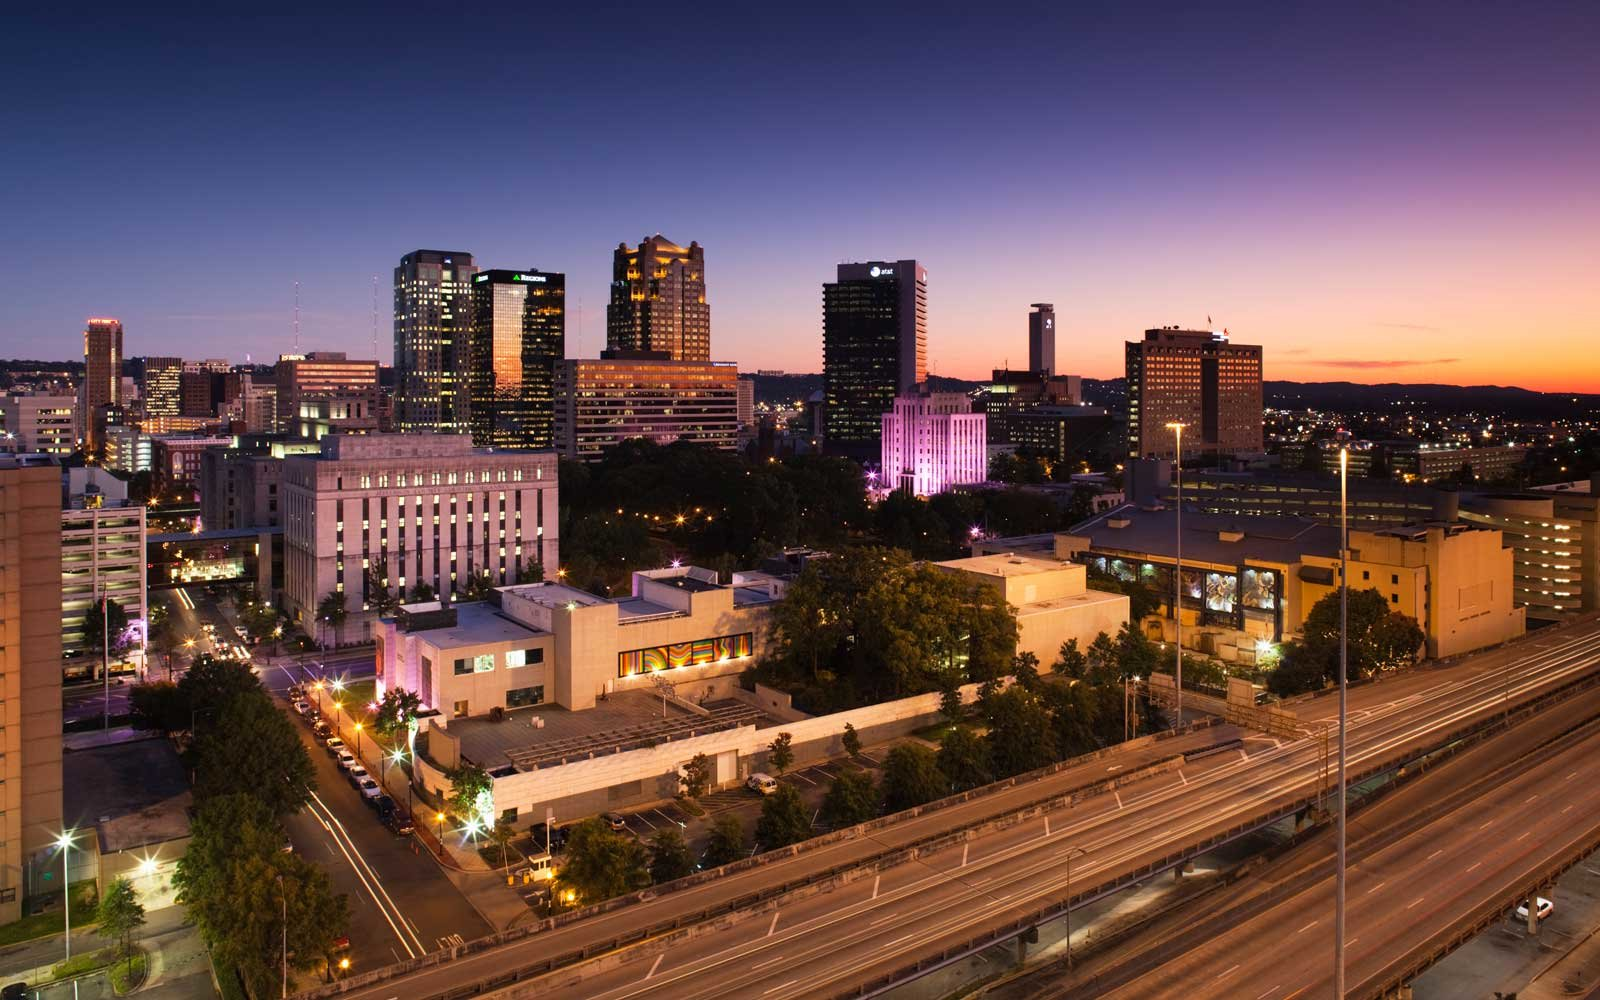 Birmingham, Alabama at dusk